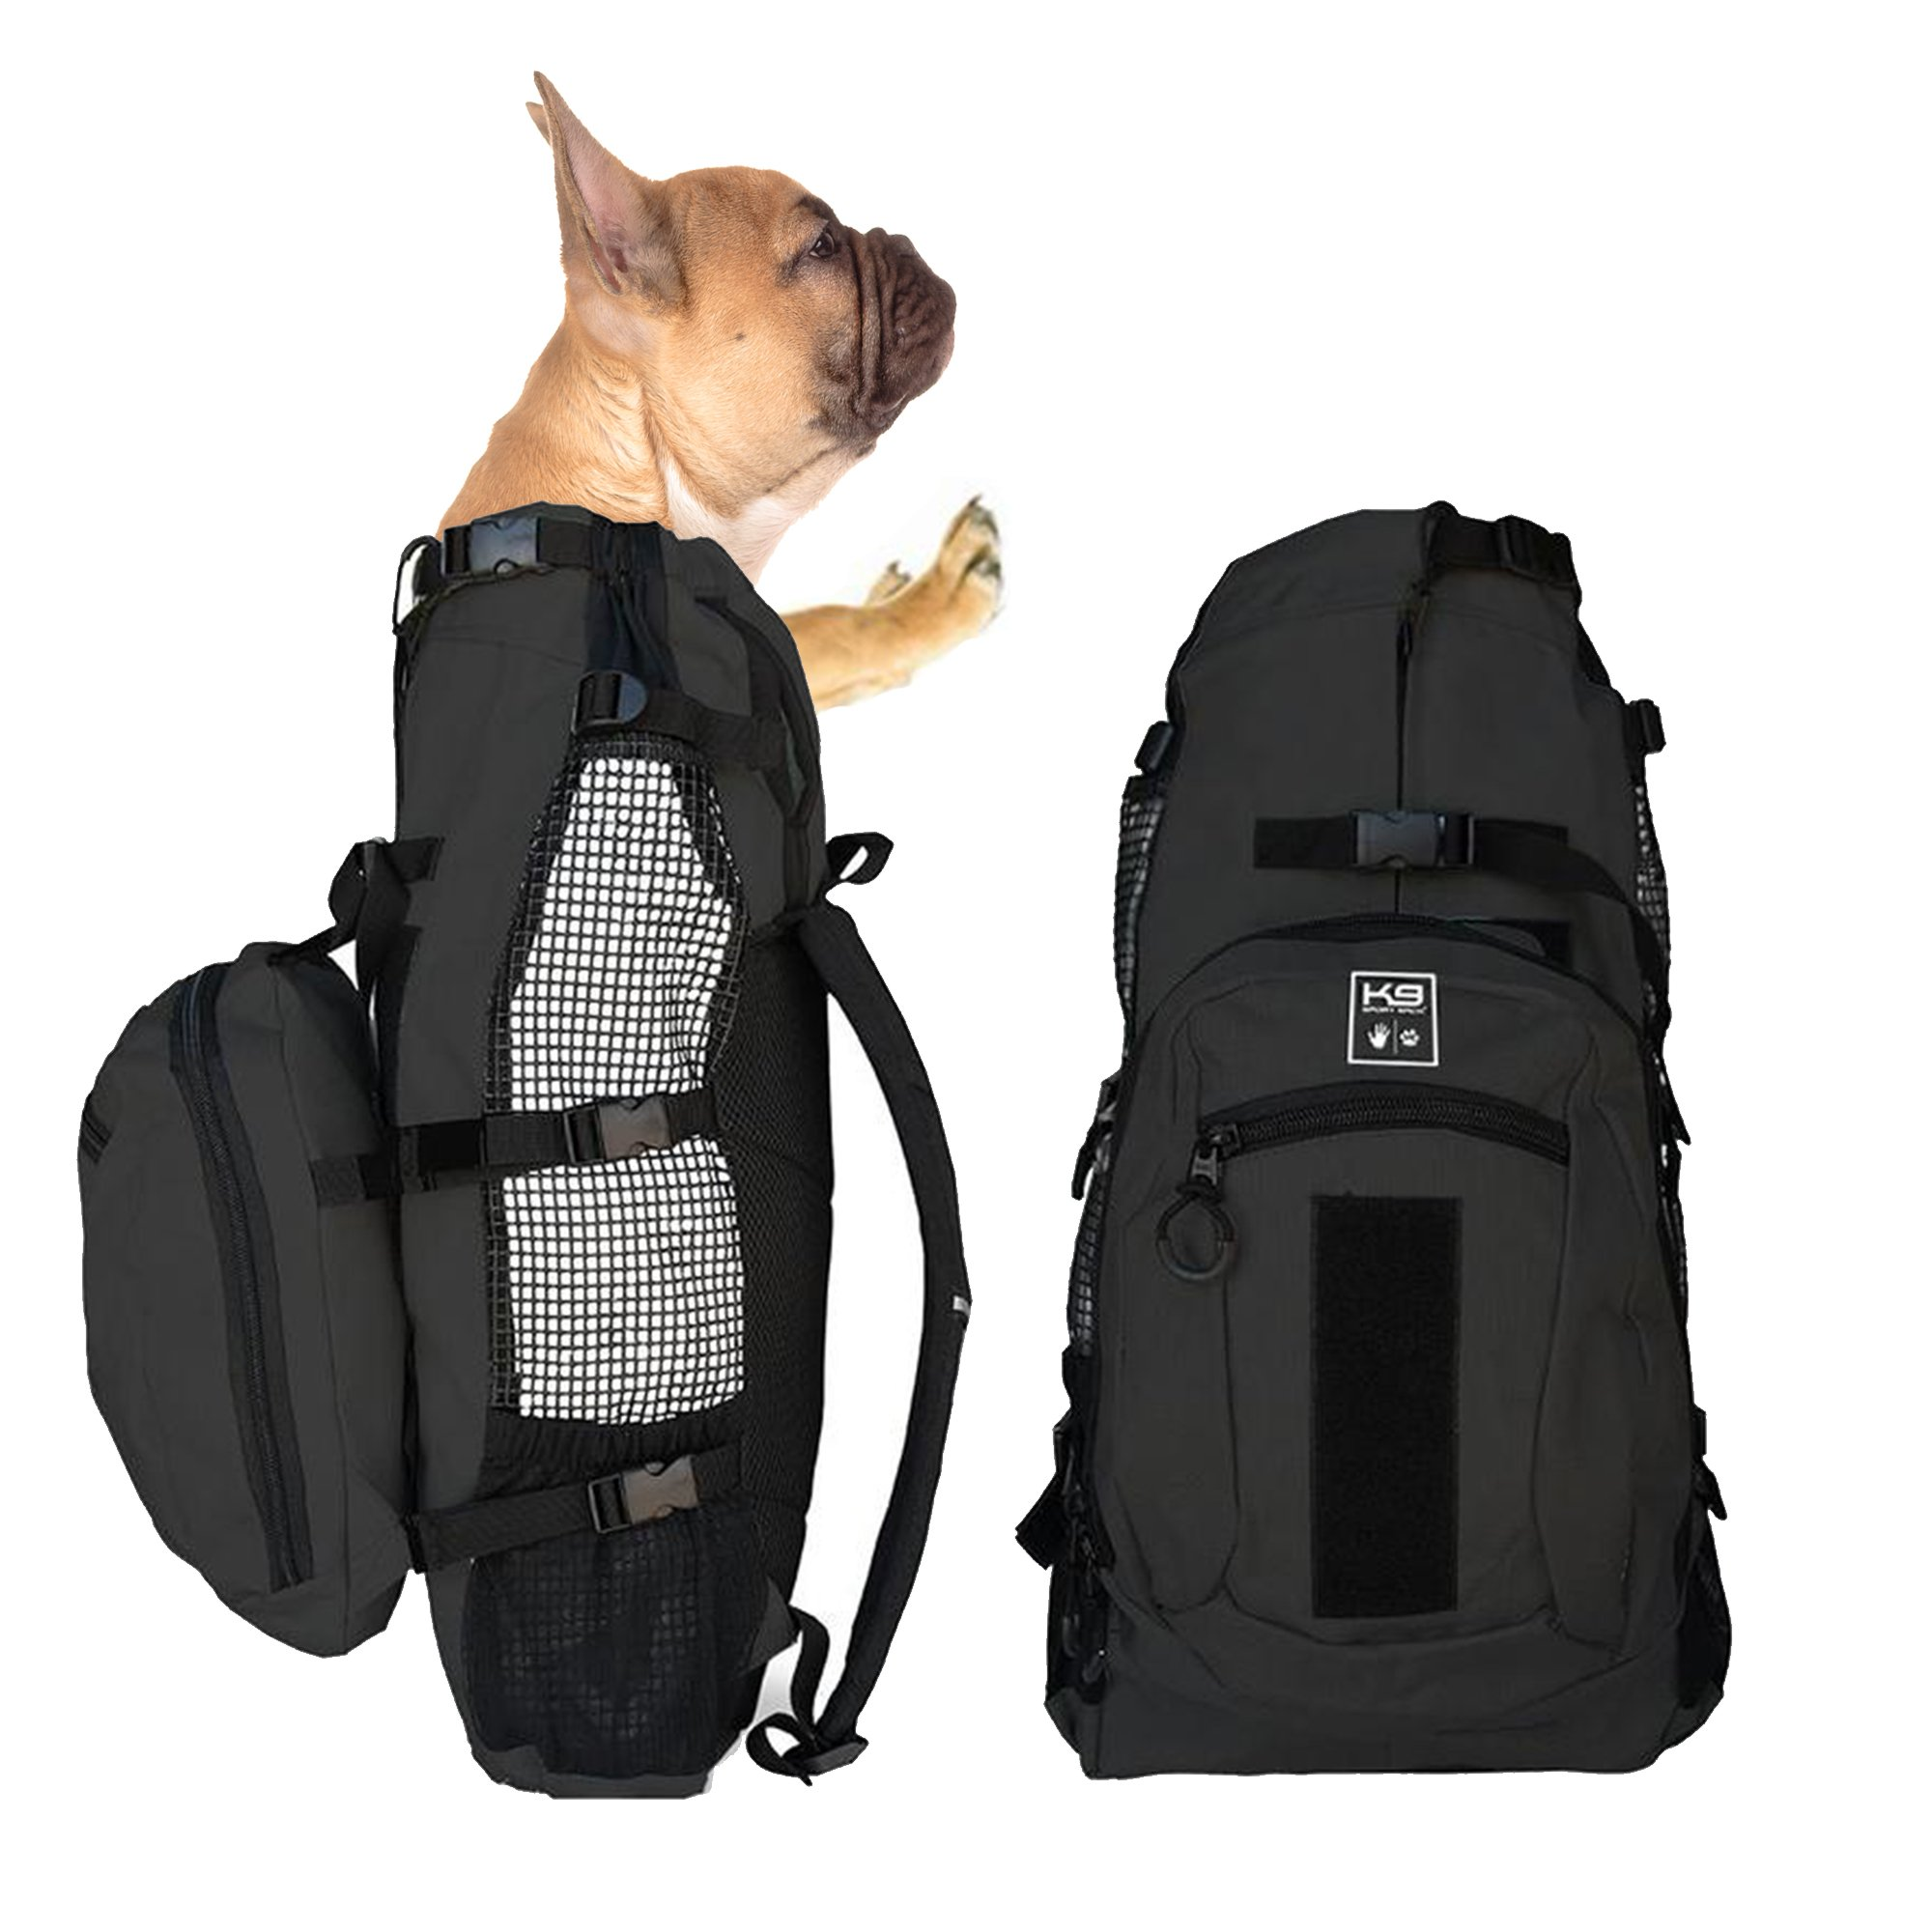 K9 Sport Sack AIR PLUS | Dog Carrier Backpack For Small and Medium Pets | Front Facing Adjustable Pack With Storage Bag | Fully Ventilated | Veterinarian Approved (Medium, Jet Black)